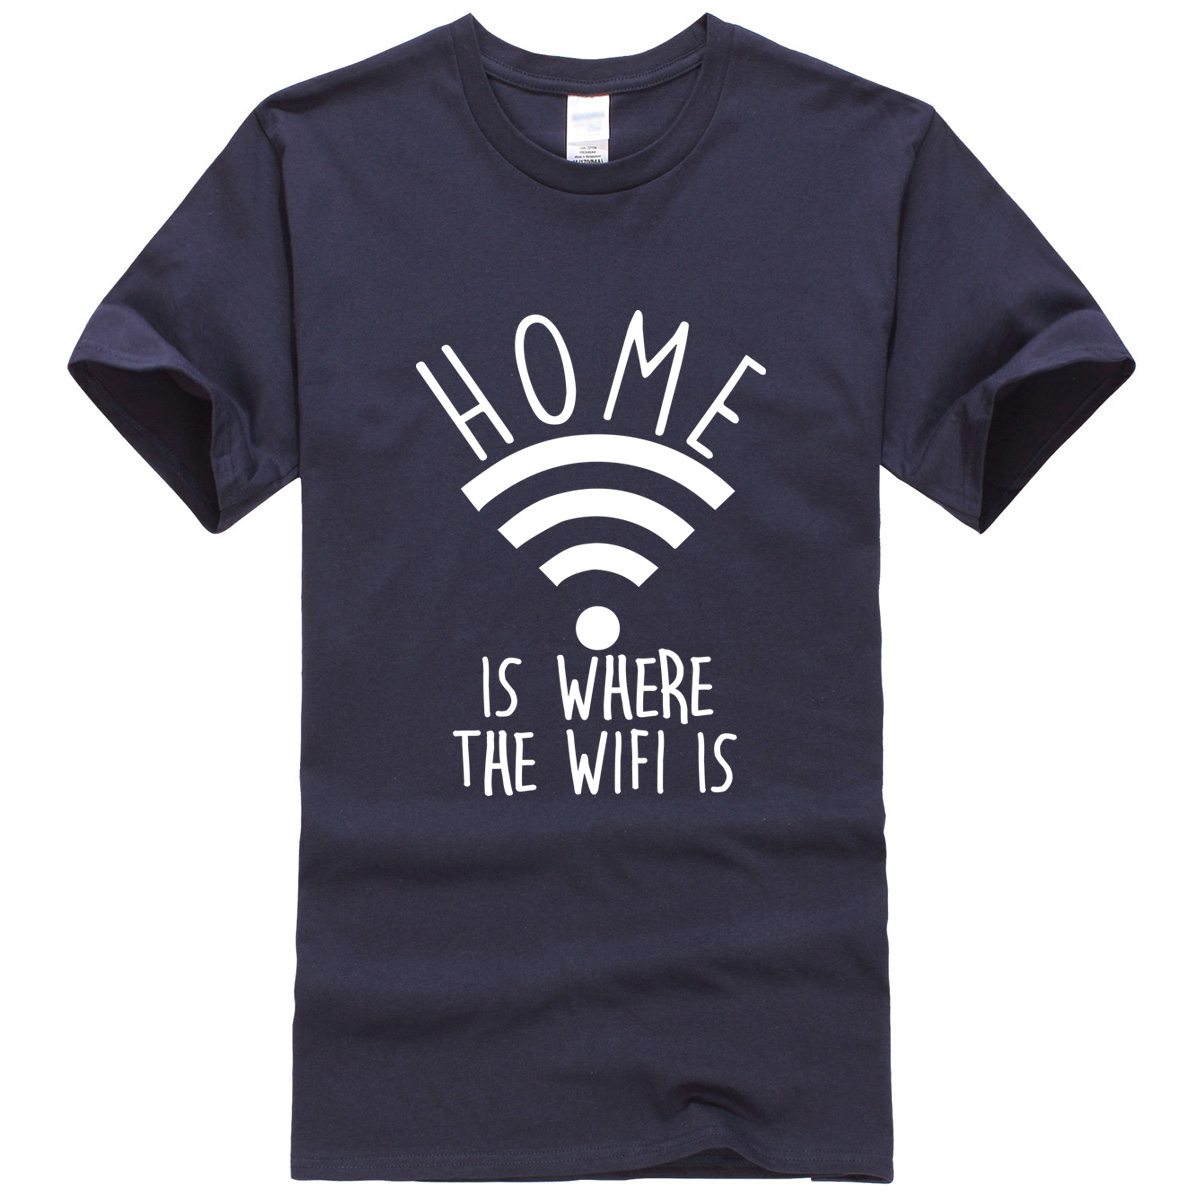 Home Is Where The Wifi Is 2017 men's T-shirts summer funny letter casual crossfit t shirt men sportwear brand clothing kpop top